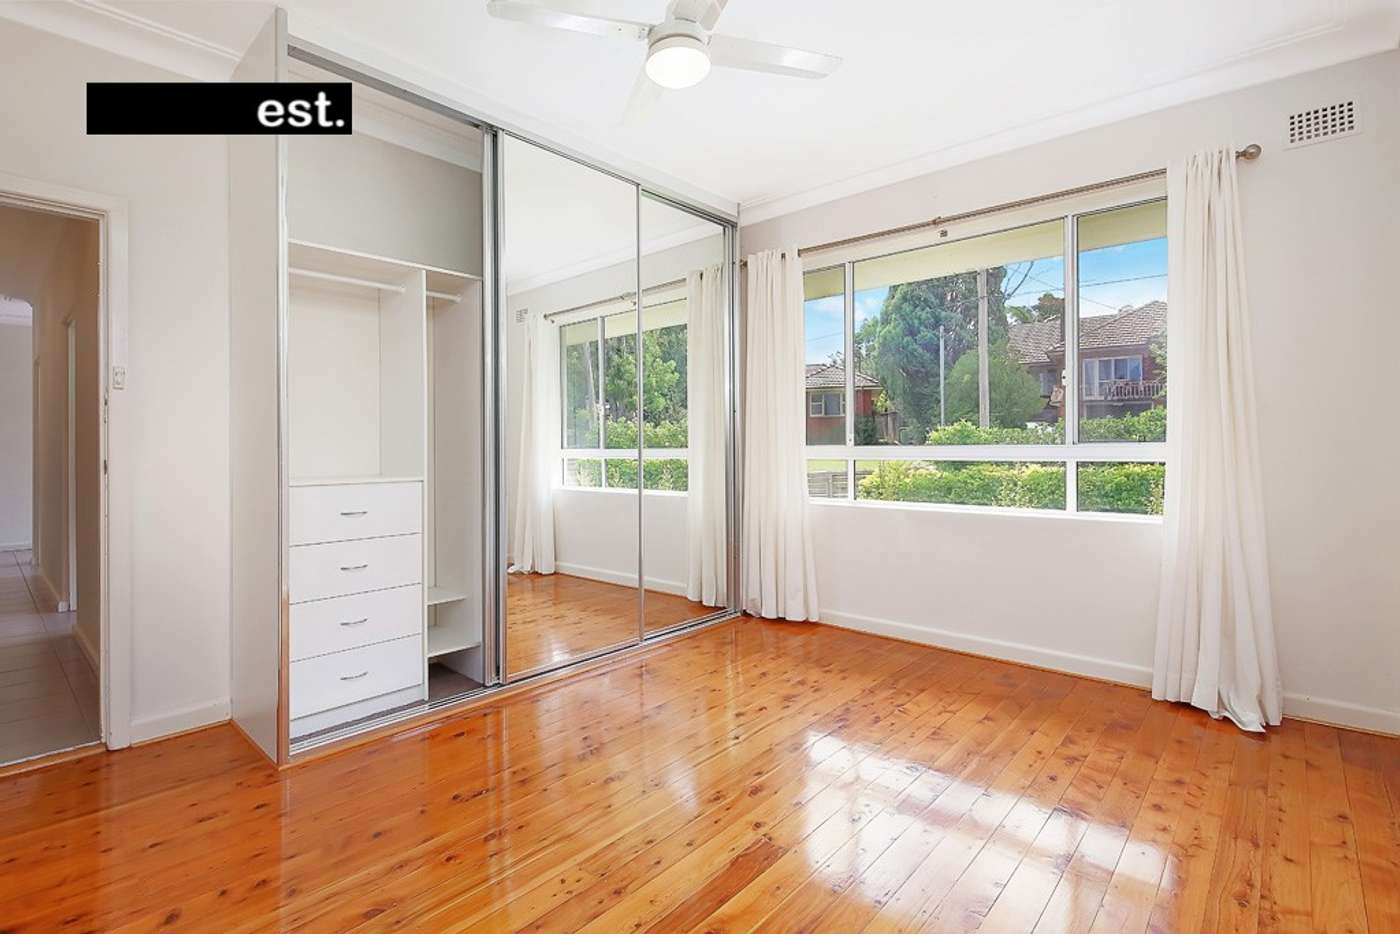 Sixth view of Homely house listing, 6 Oatlands Crescent, Oatlands NSW 2117